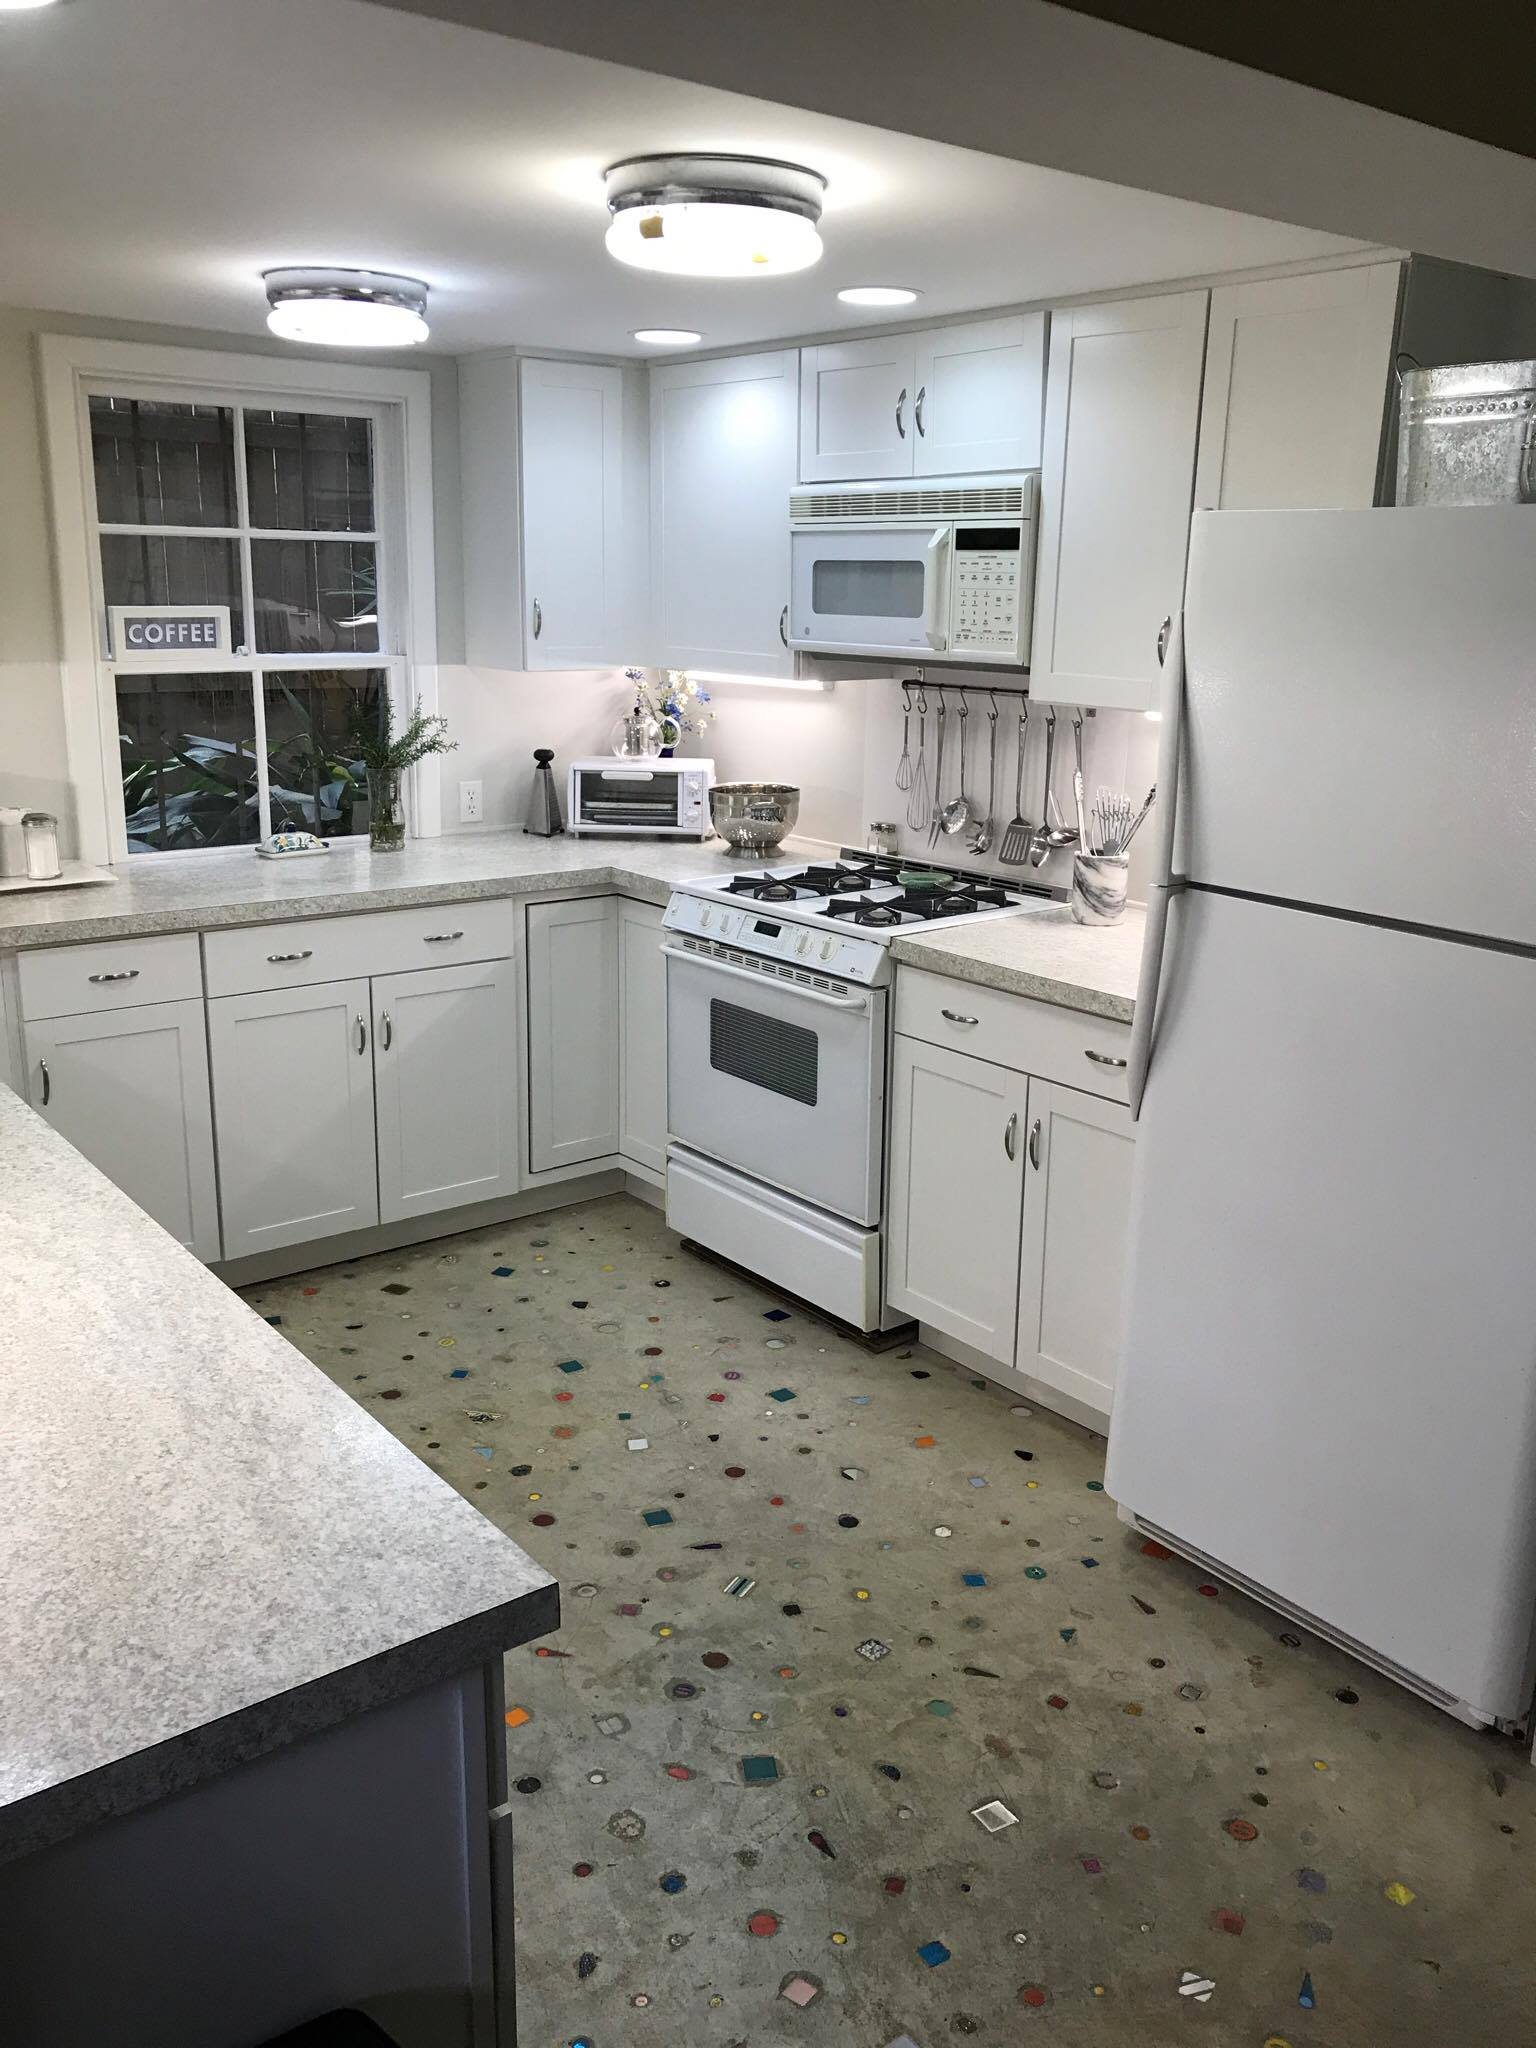 Hows this for size? This 2 bedroom New orleans apartment came with a stocked kitchen & they included chilren's utensils & toys for our kids!